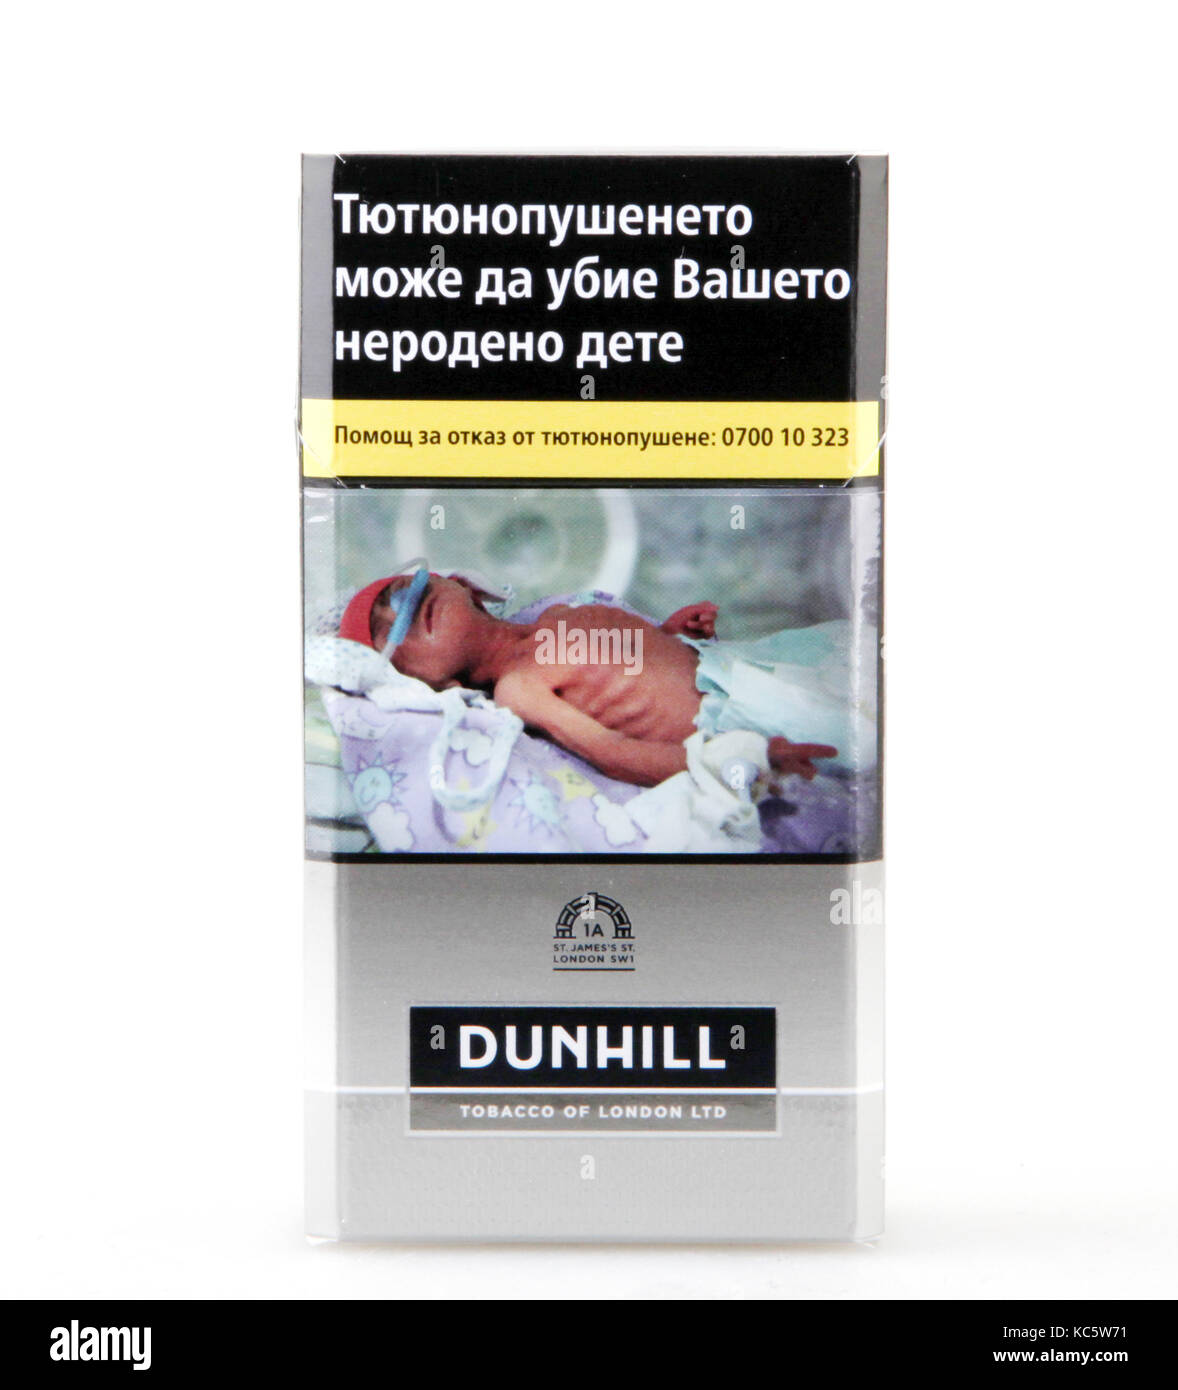 Buy consulate cigarettes